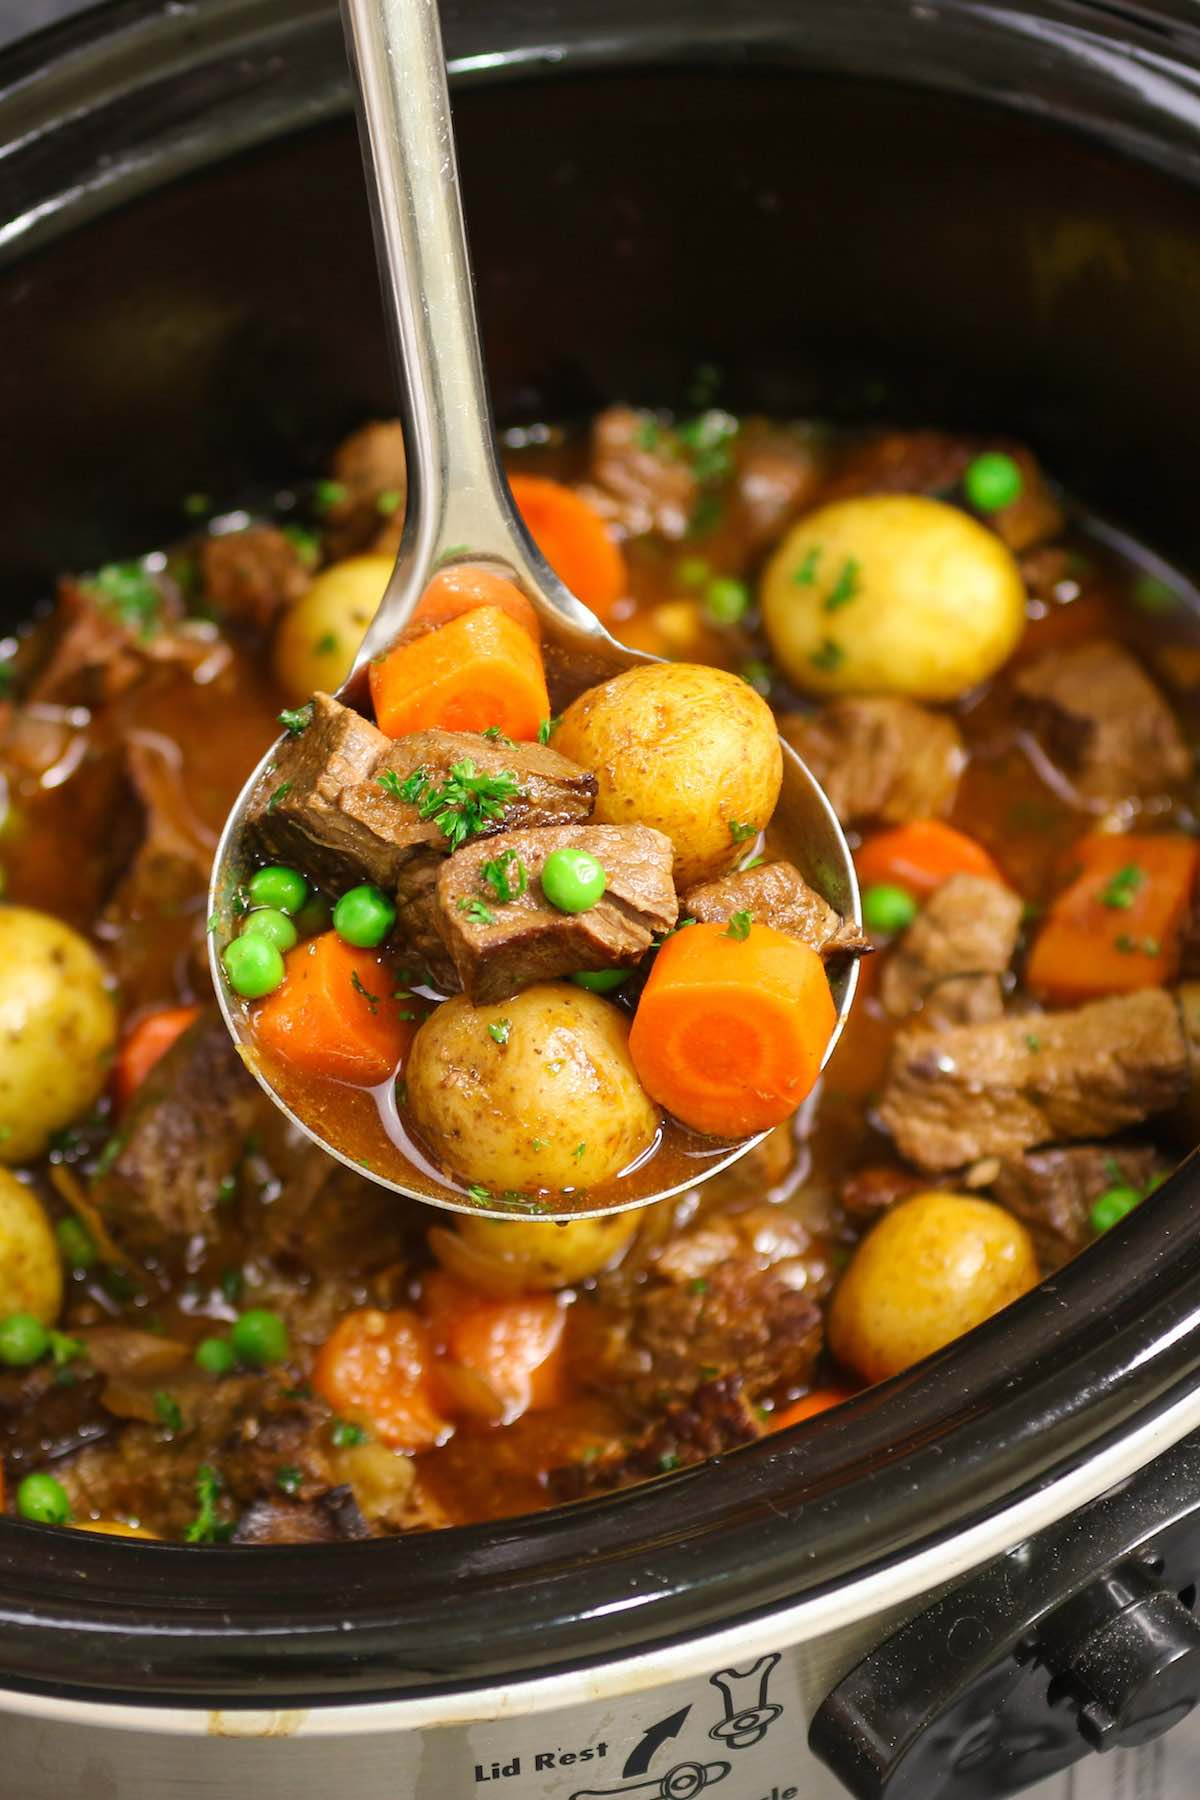 Classic beef stew after 8 hours of cooking in the crock pot